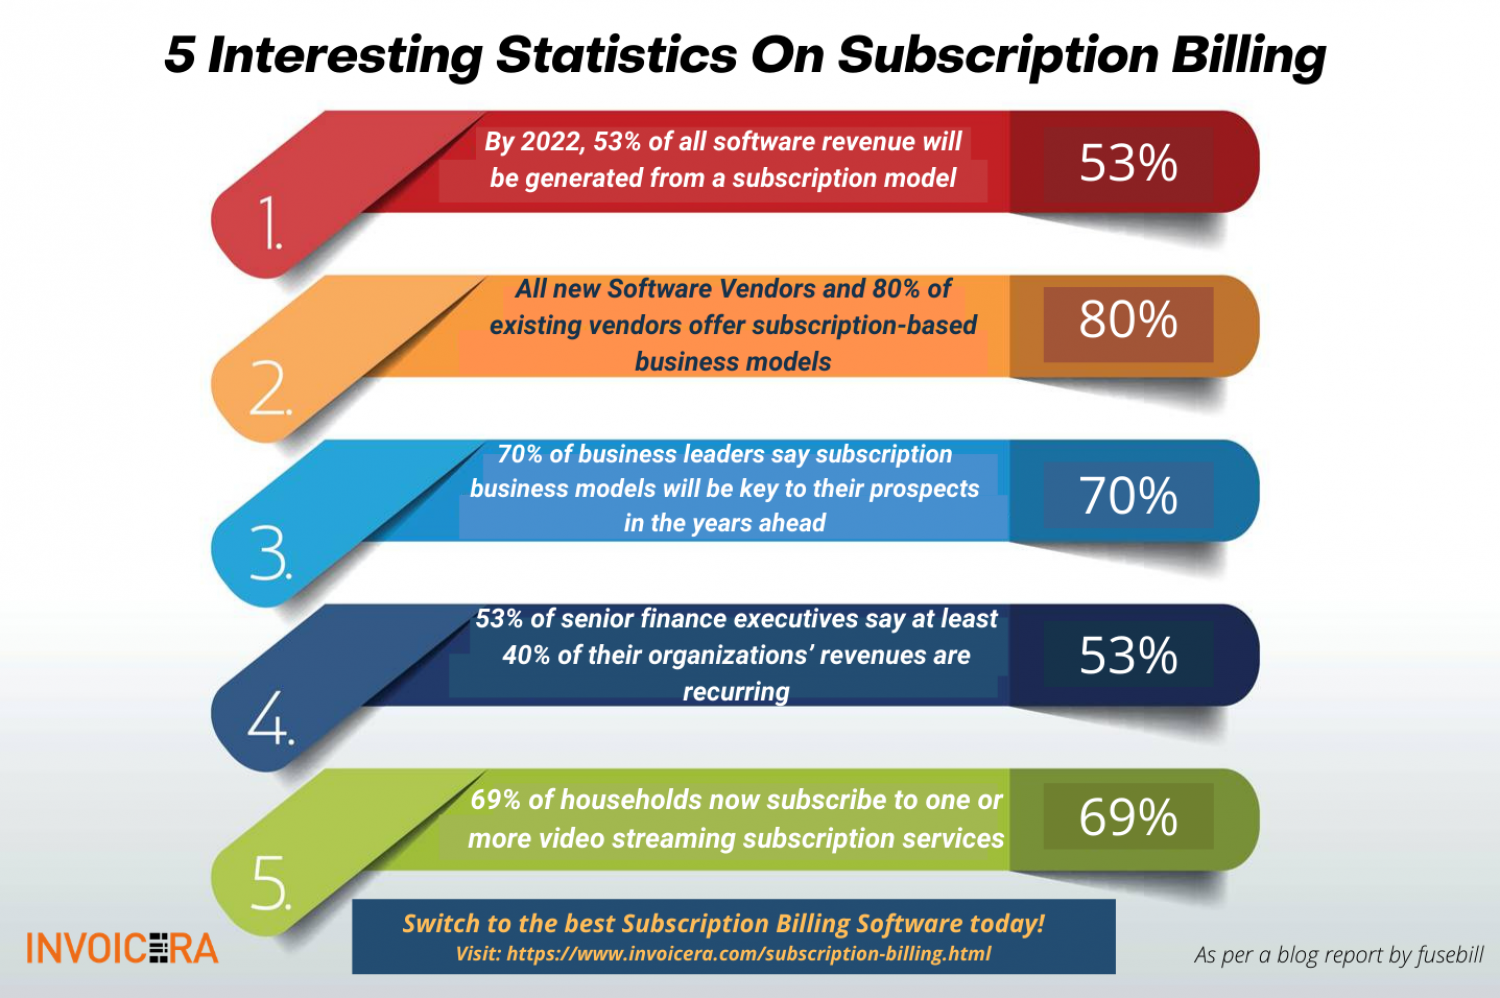 5 Interesting Statistics on Subscription Billing in Businesses Infographic